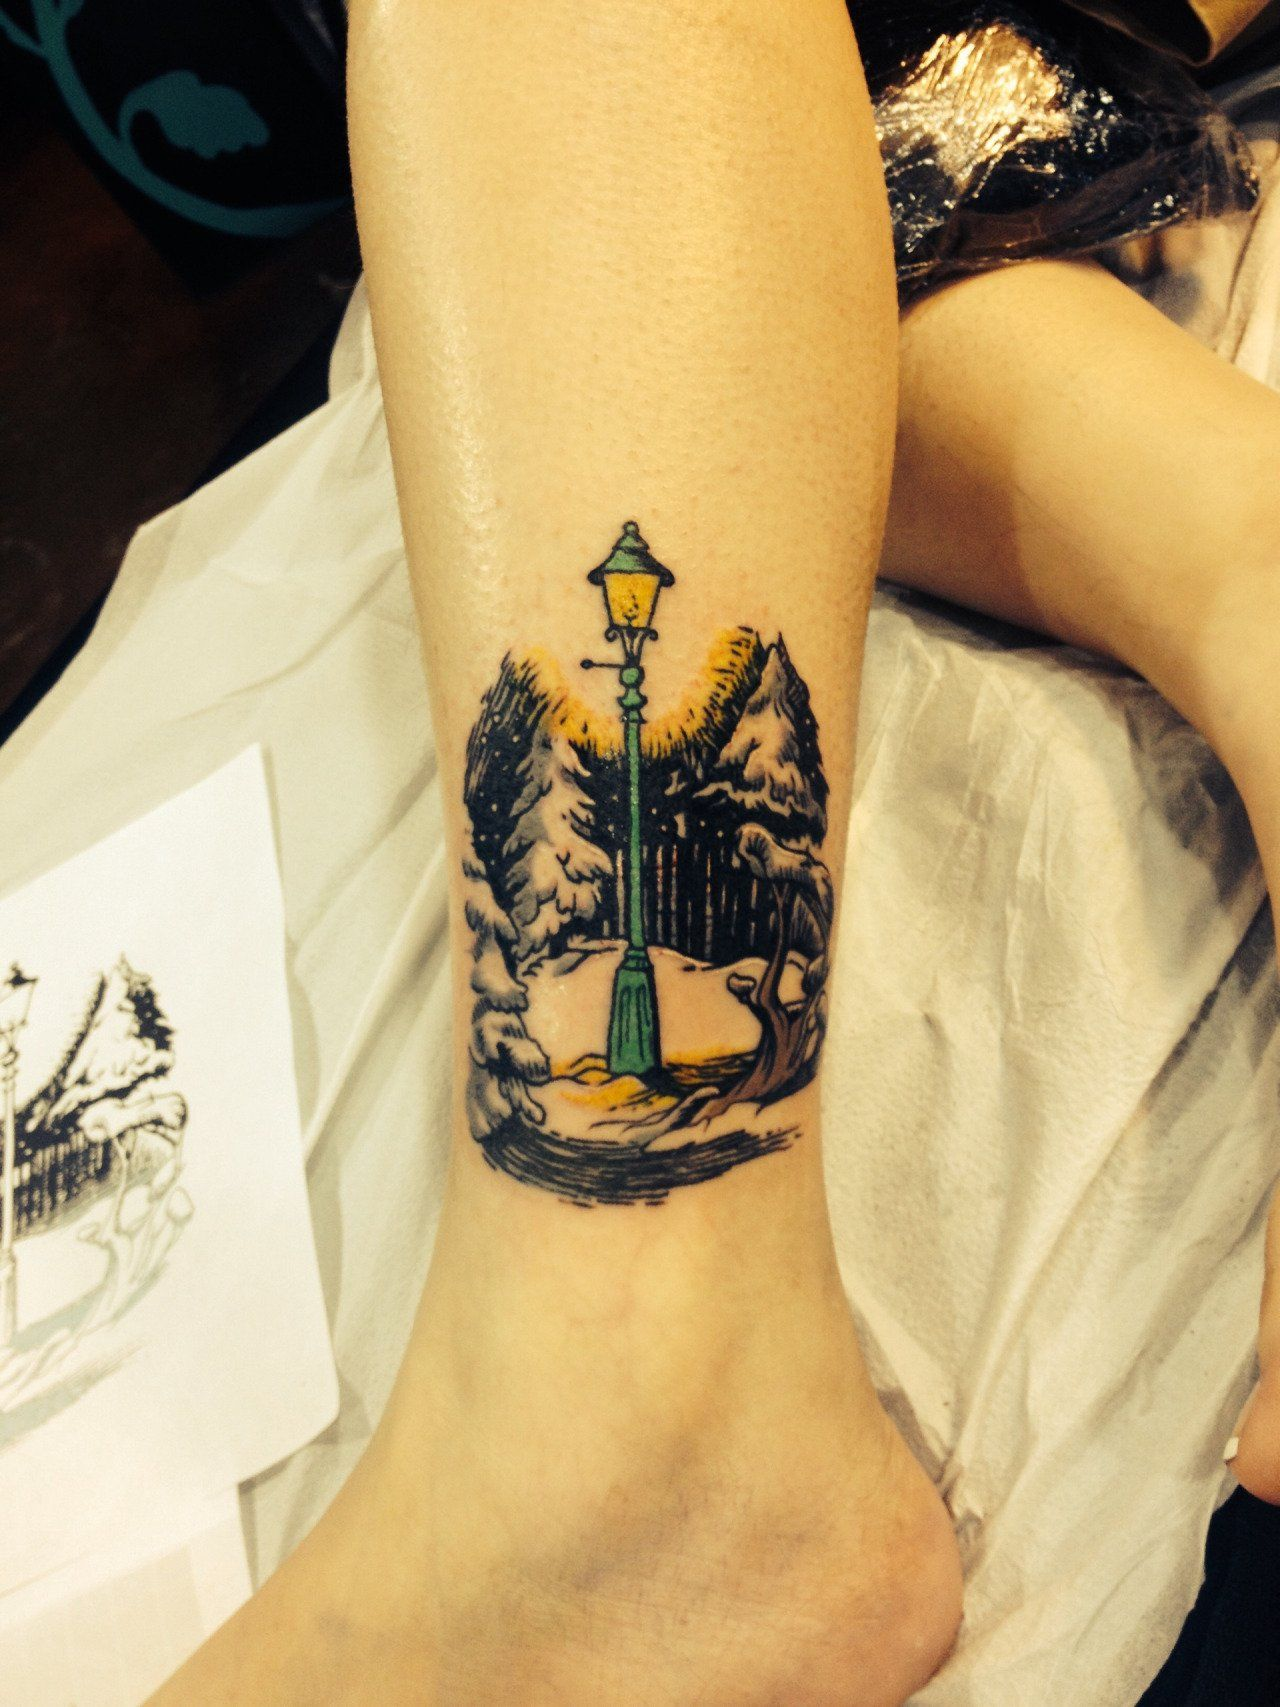 If youre a bibliophile these literary tattoos will